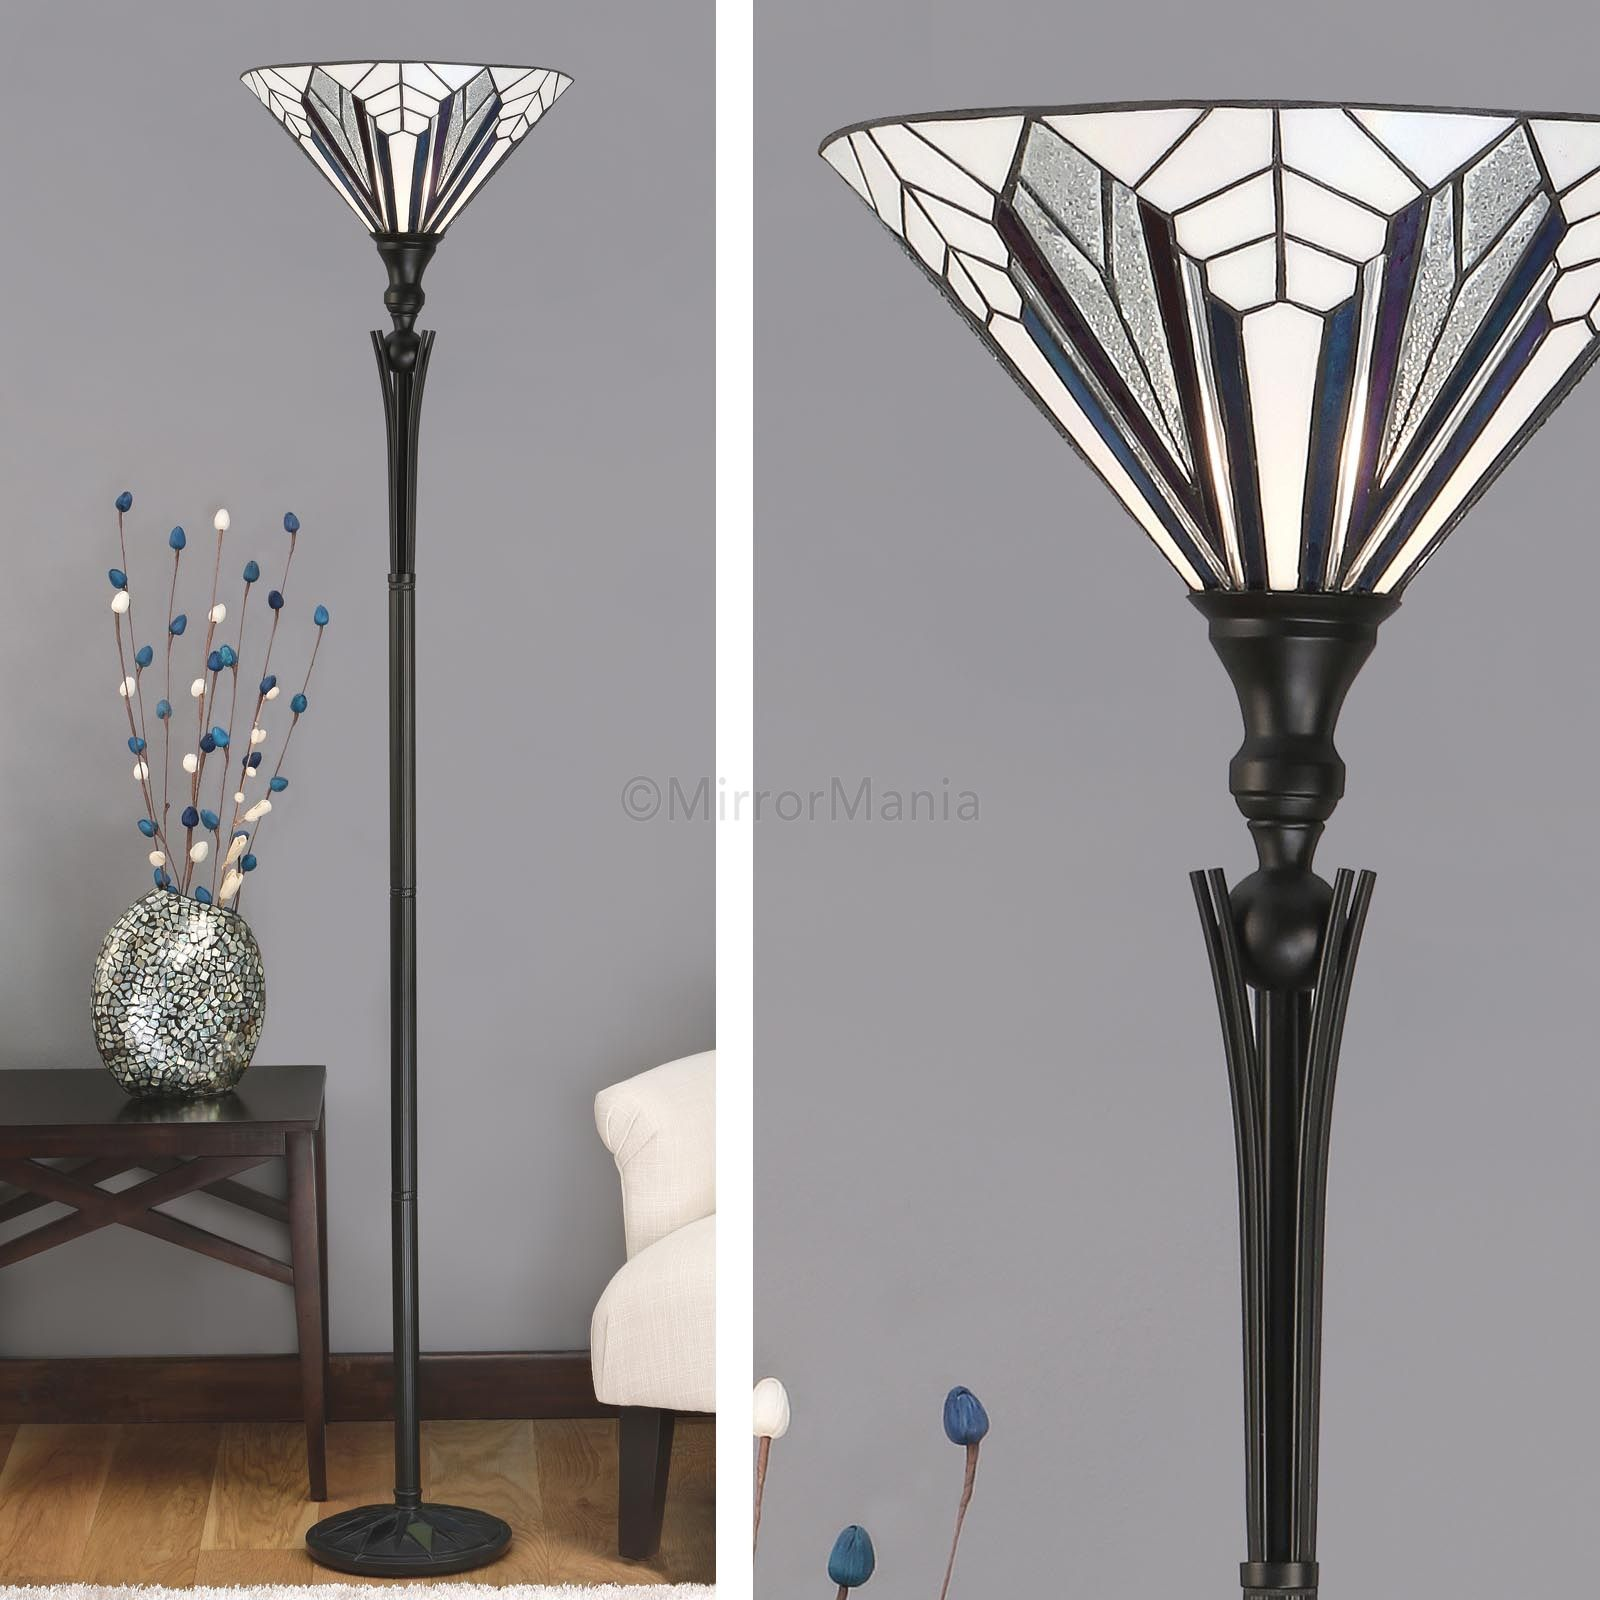 astoria range art deco tiffany uplighter floor lamps lighting astoria range art deco tiffany uplighter floor lamps lighting home decor